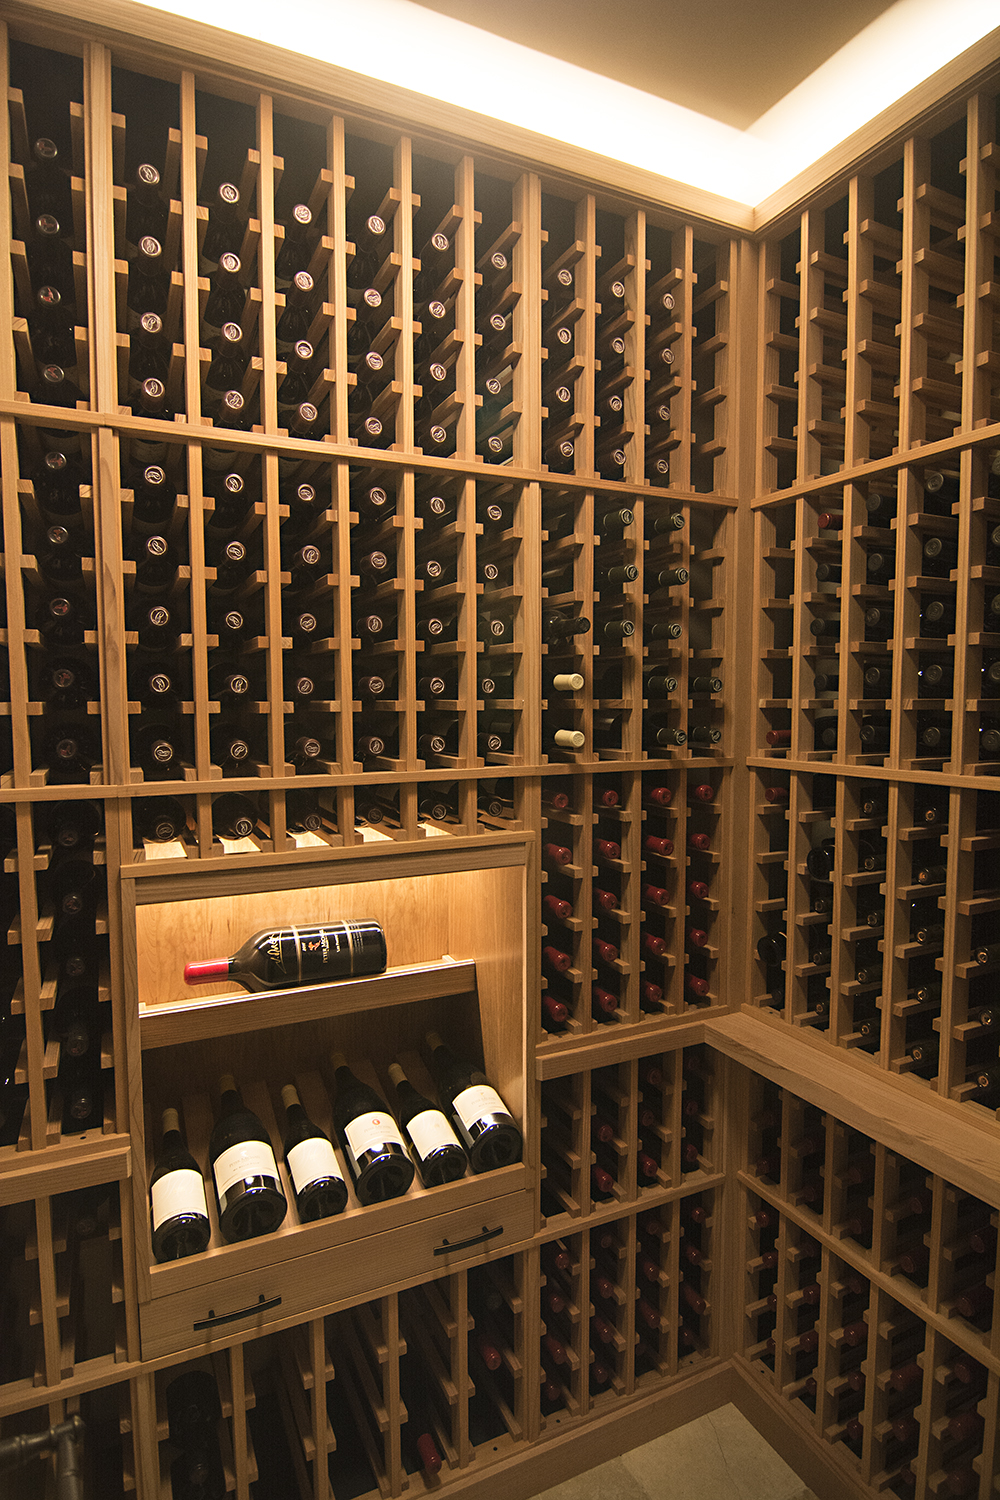 albion_cellars plain9.jpg